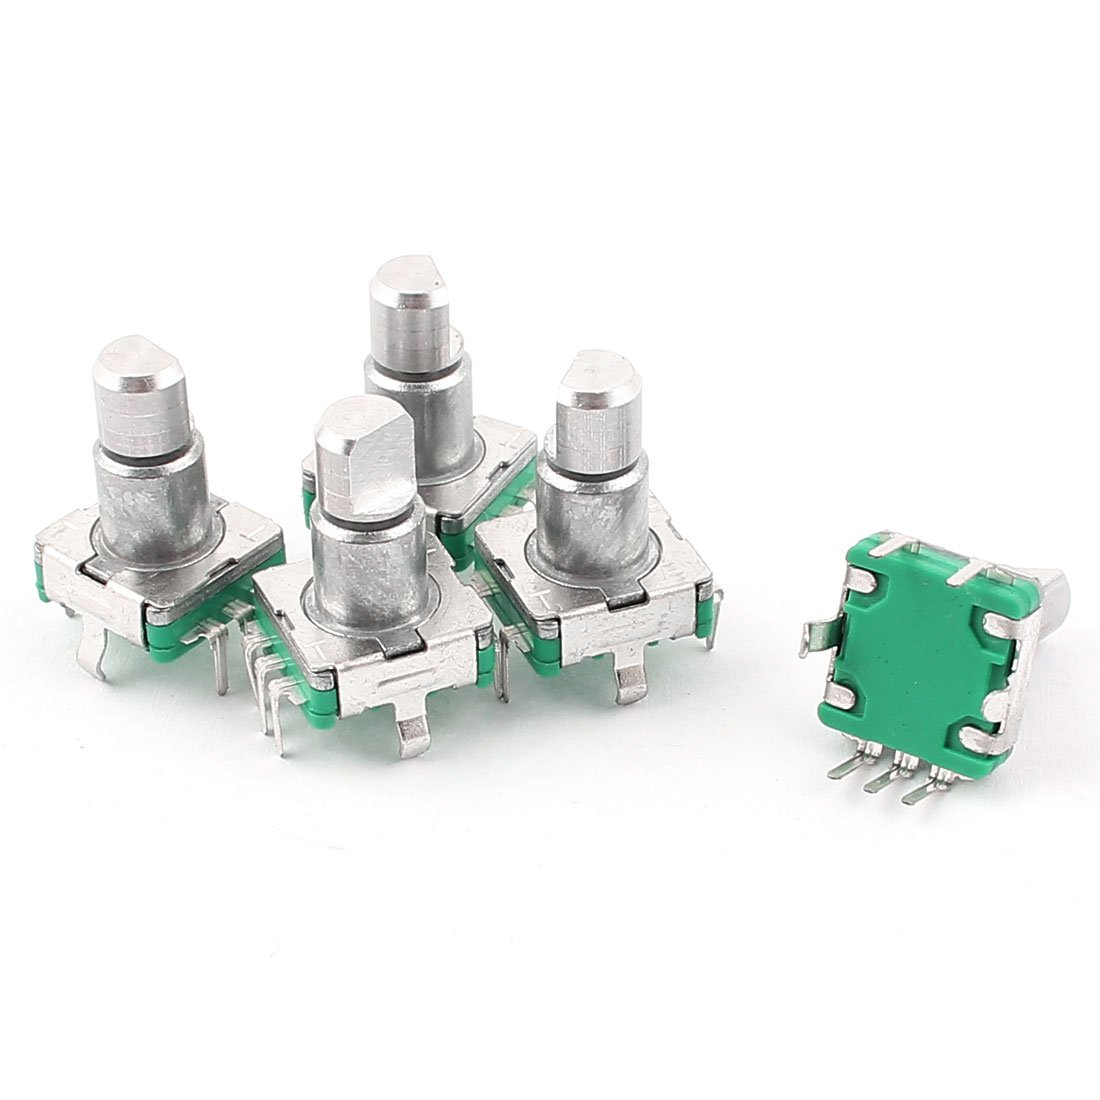 Uxcell Rotary Encoder Push Button Switch Key Switch Components, 6 mm,  5 Pieces